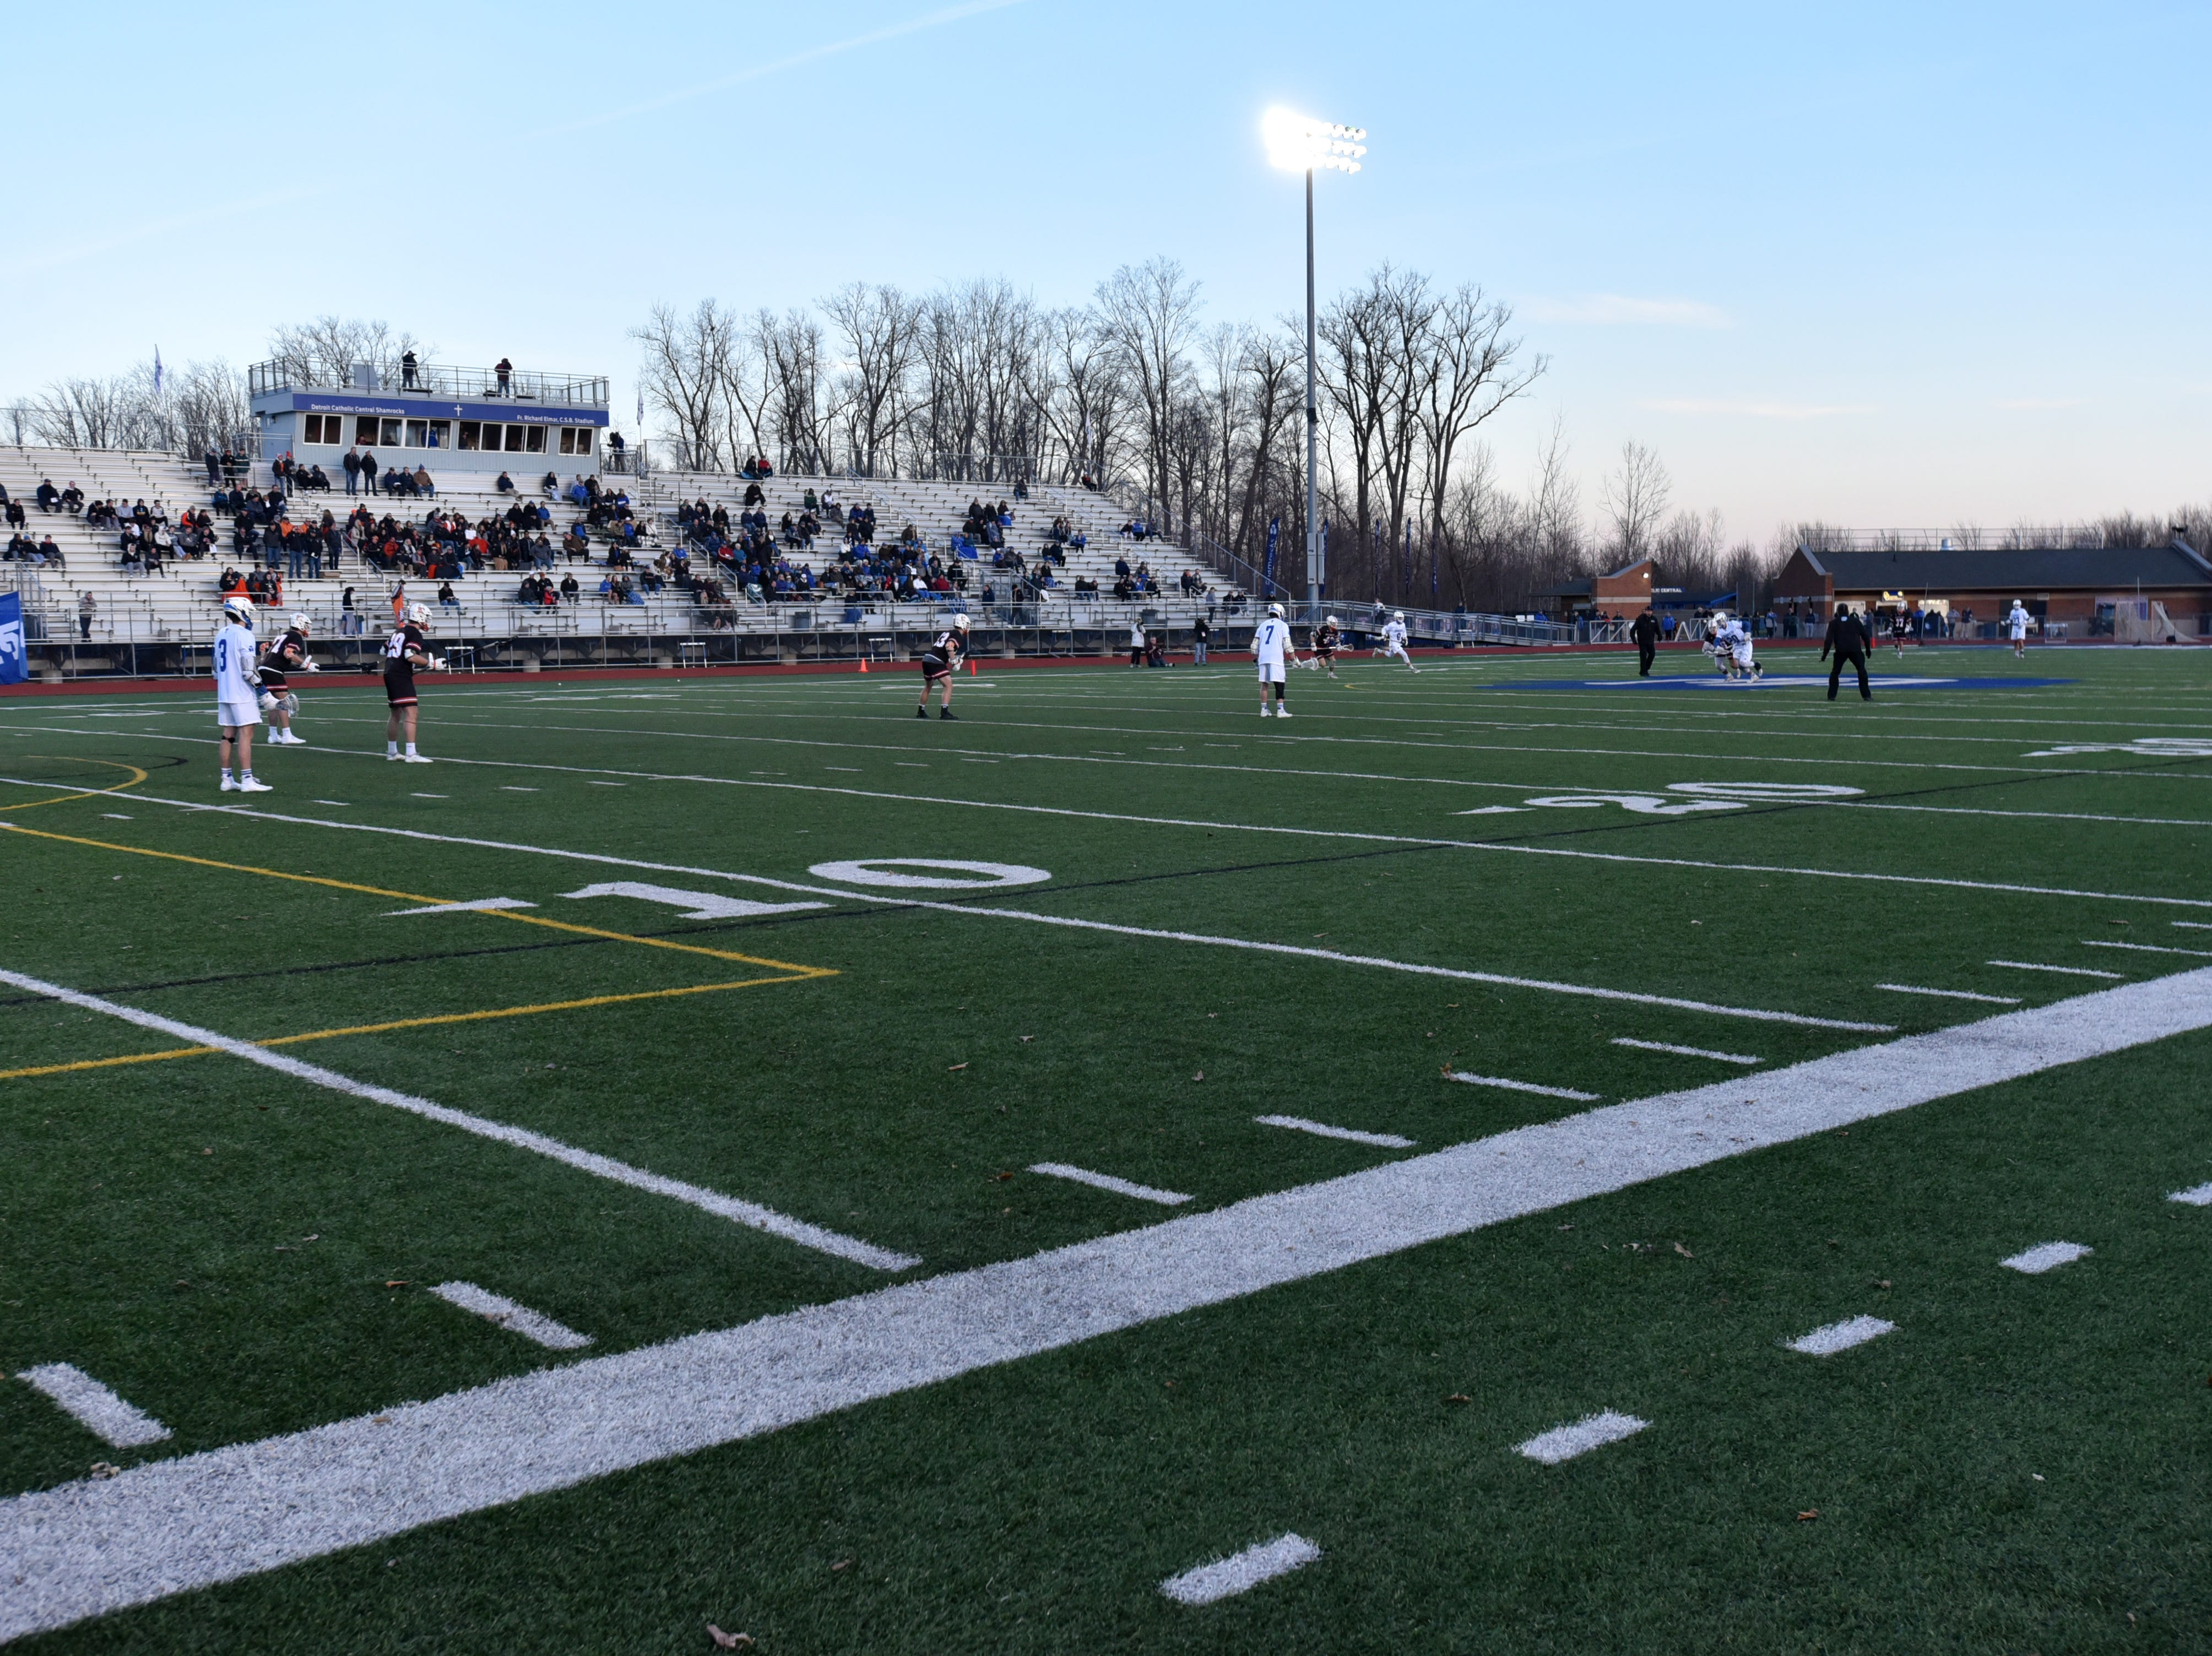 Detroit Catholic Central hosted Birmingham Brother Rice at their stadium on March 26.